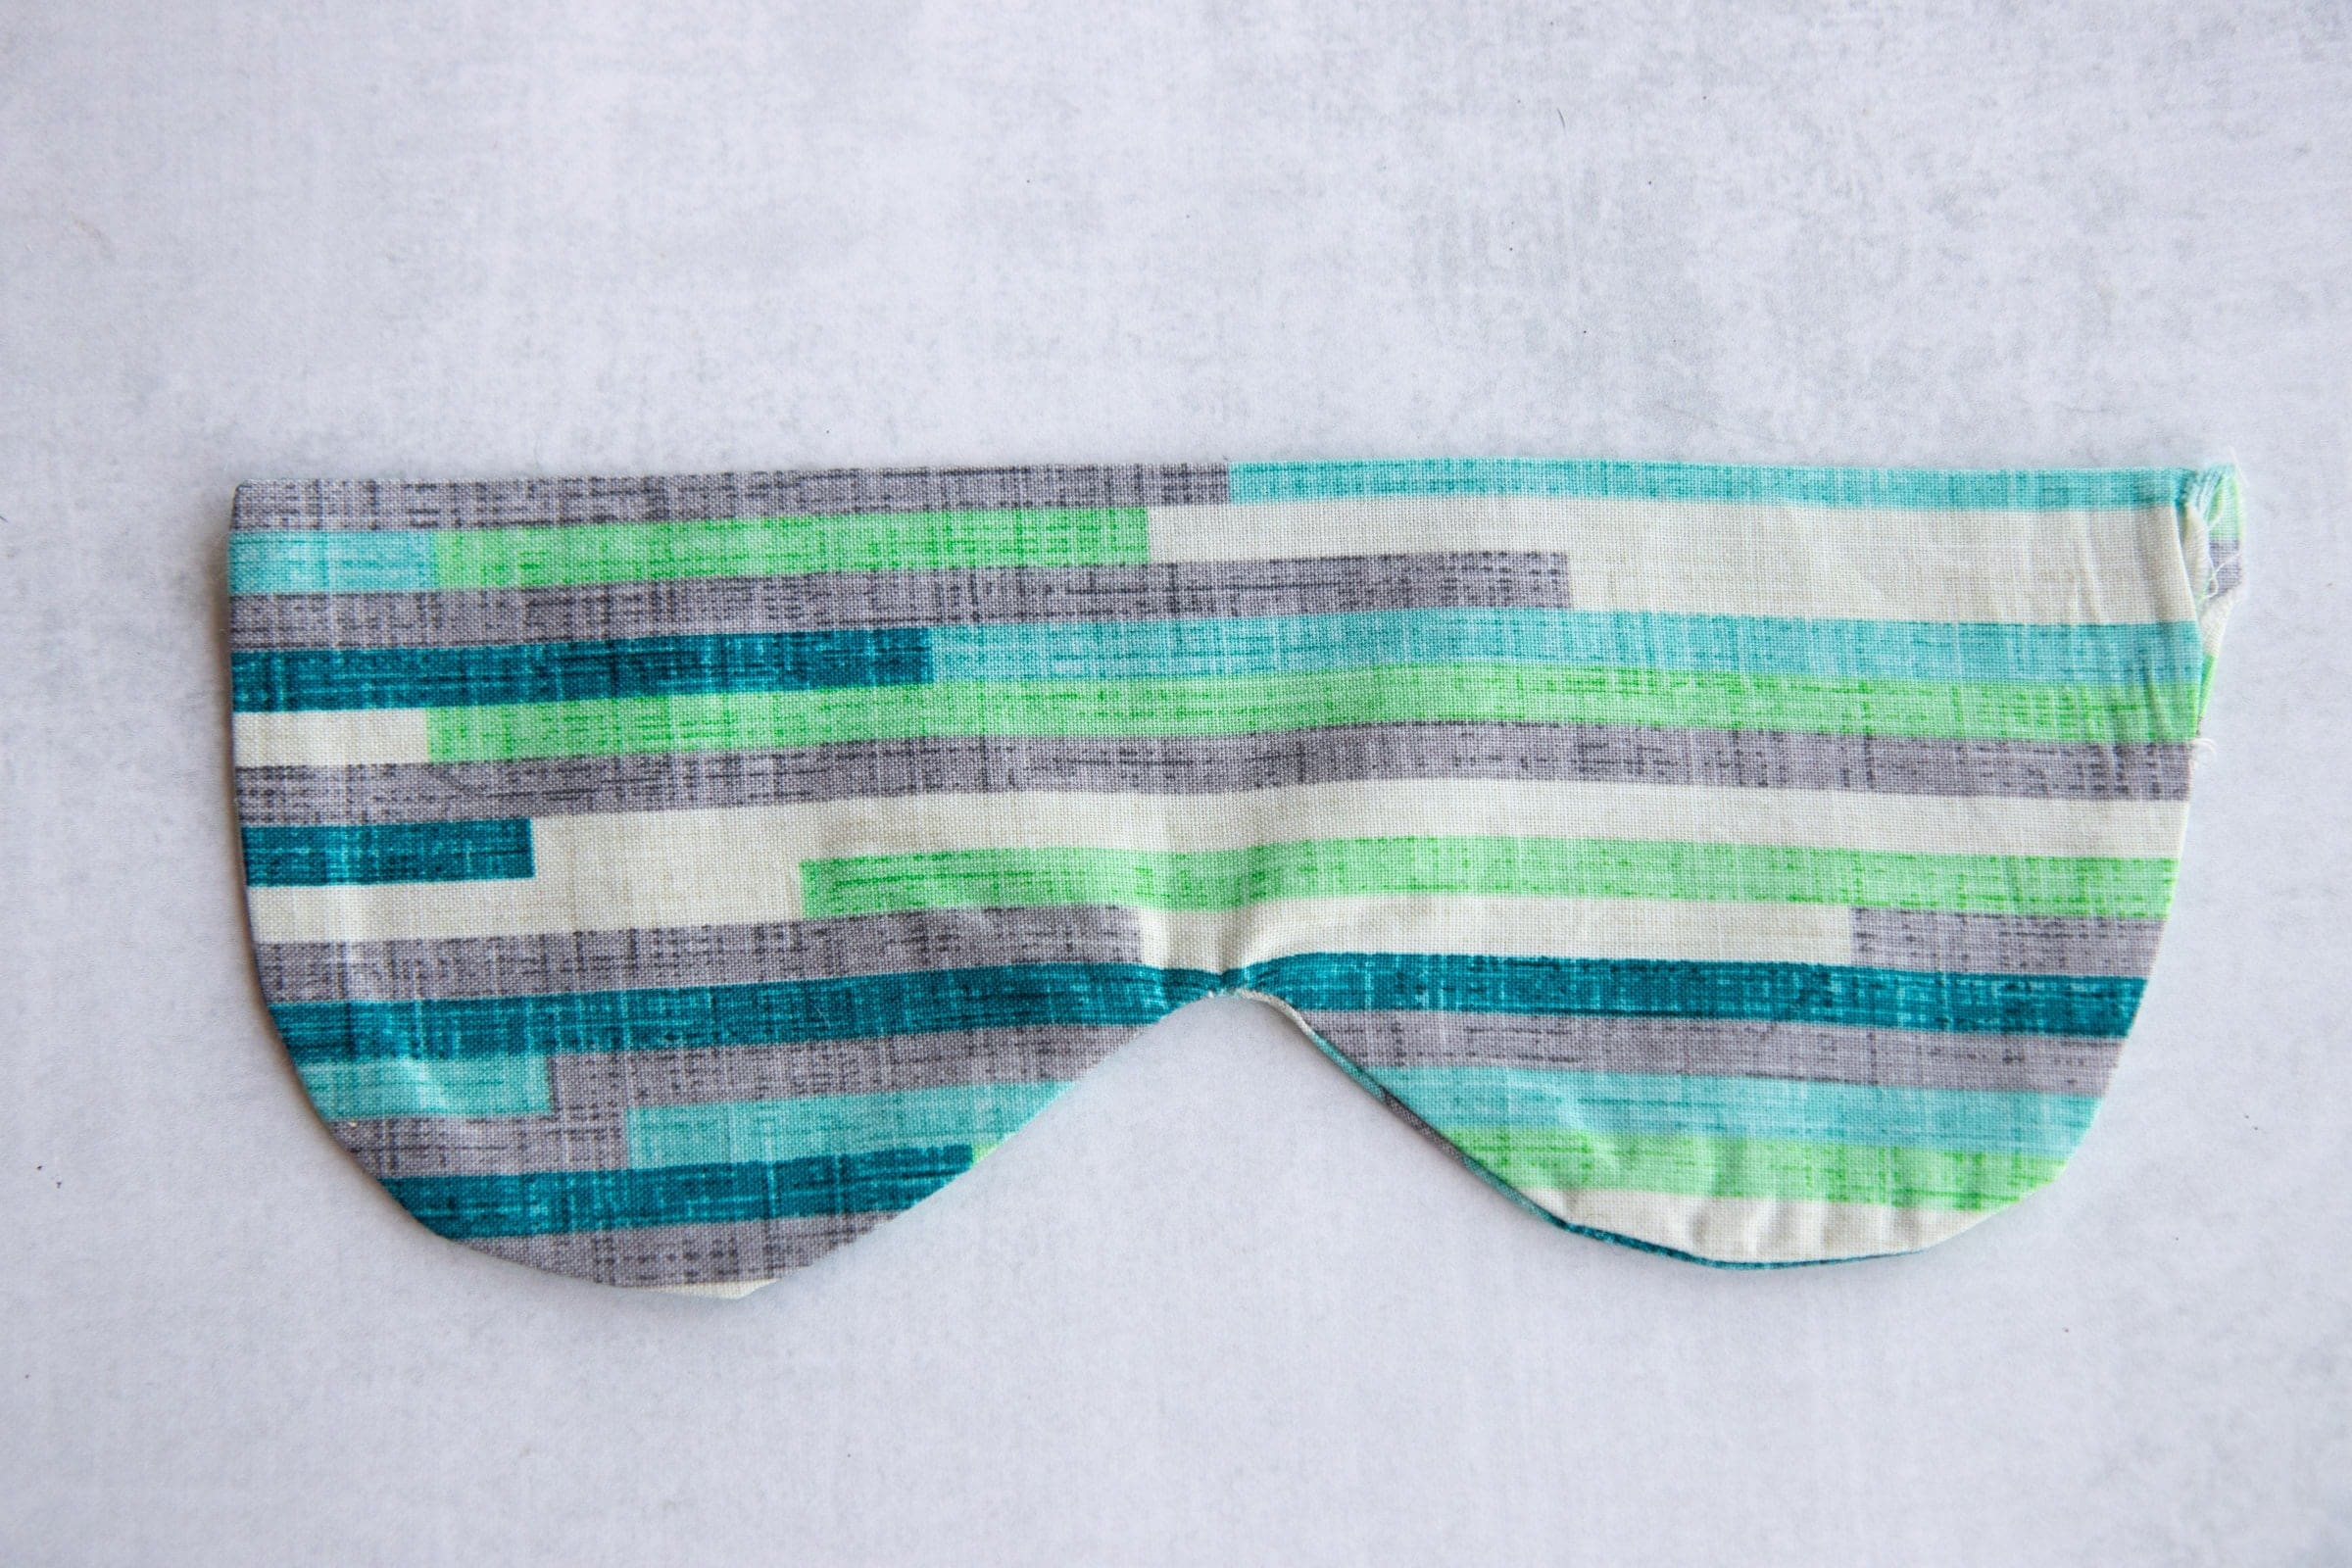 Blue, green, white, and grey Soothing Headache Eye Masks sewn together but unfilled